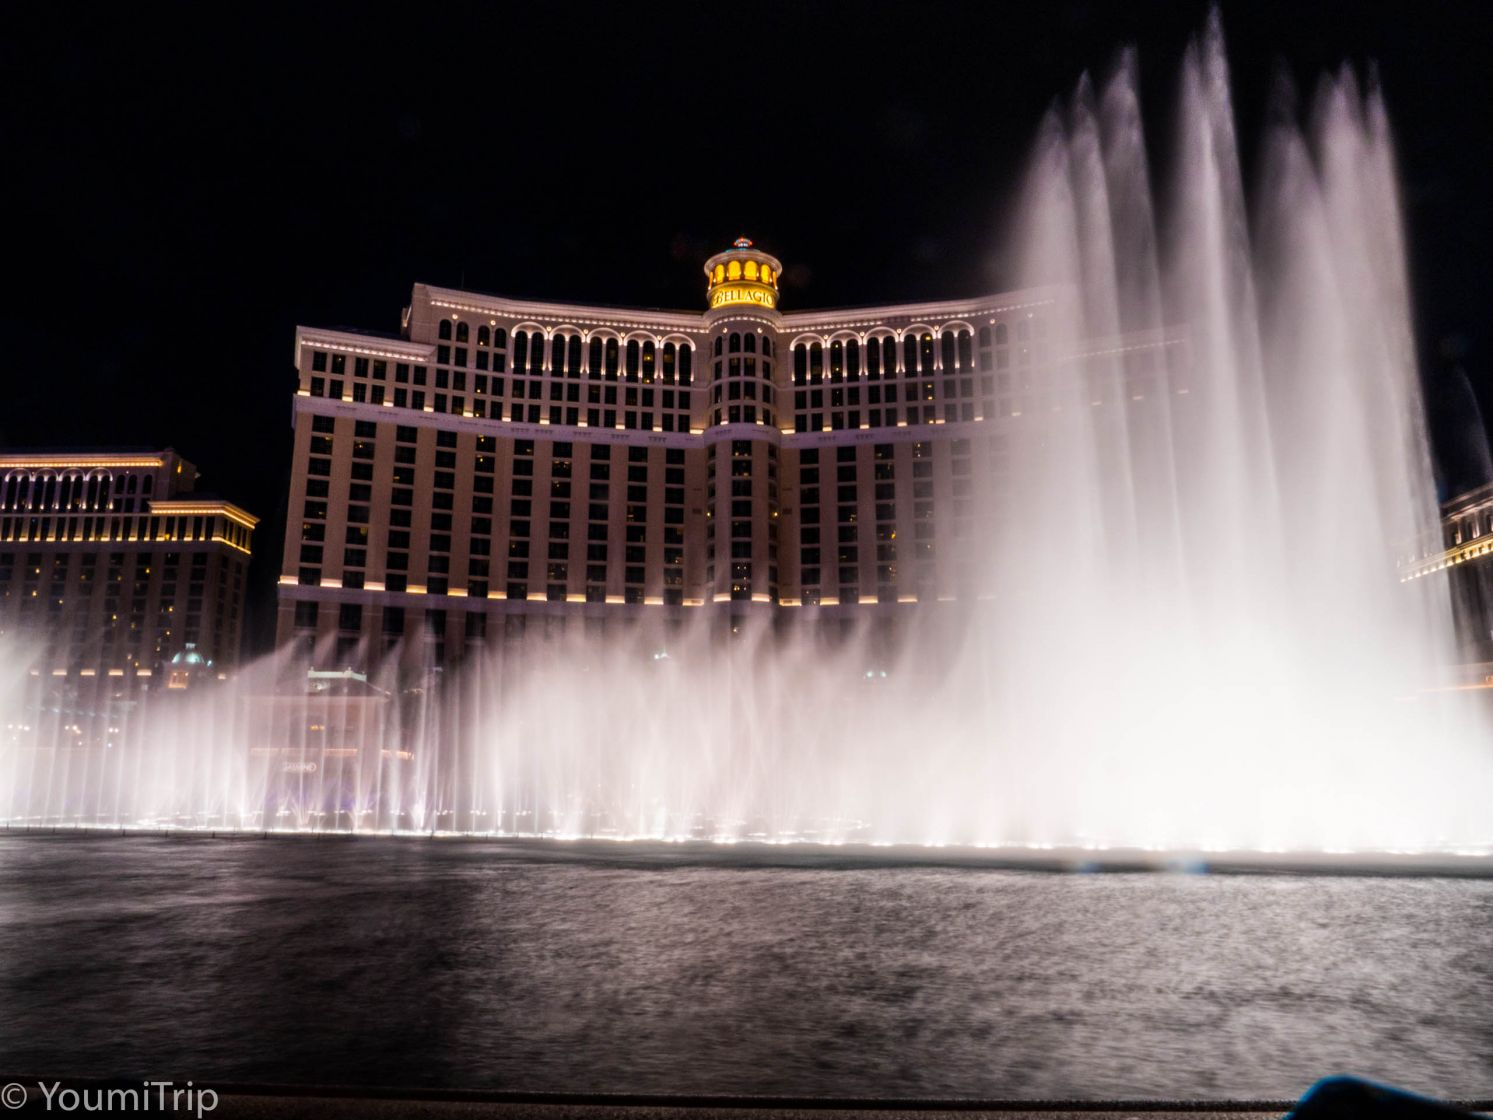 The Bellagio fountain